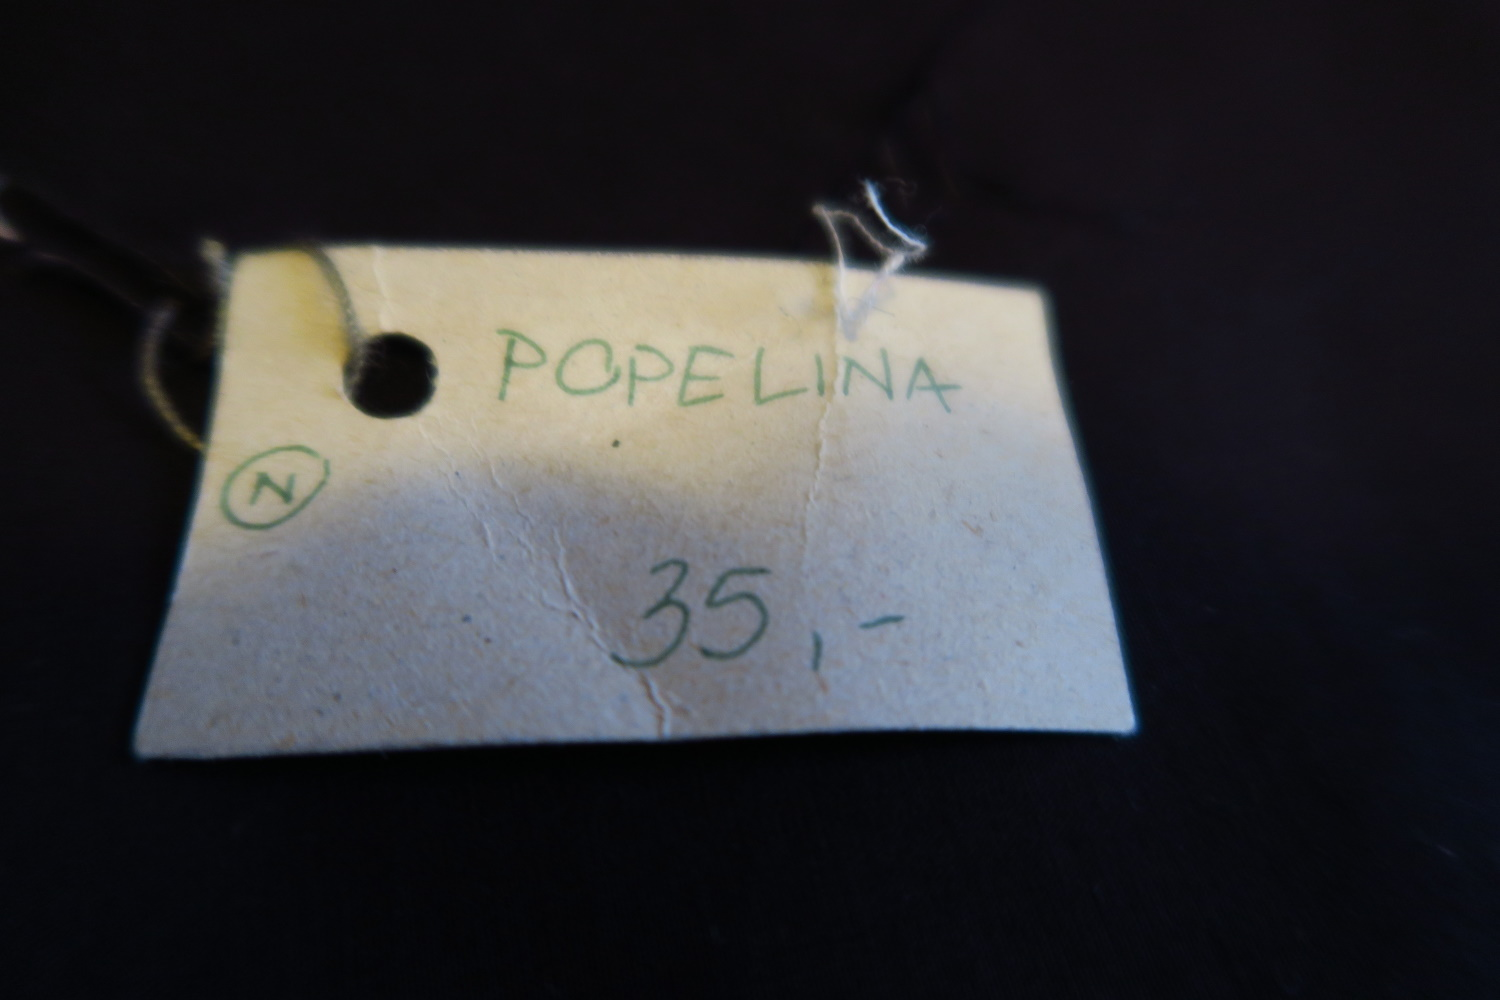 "1. Black poplin - I had 5 meters of this 60"" wide solid black poplin - all cotton from what I could tell - no fabric content on the tag. It was gone by July 20, 2019 The 35 probably meant 35 zl - though I'm not sure - maybe what they paid for it. I've got to pick up my pace. This had a really nice feel to it. Very crisp!"